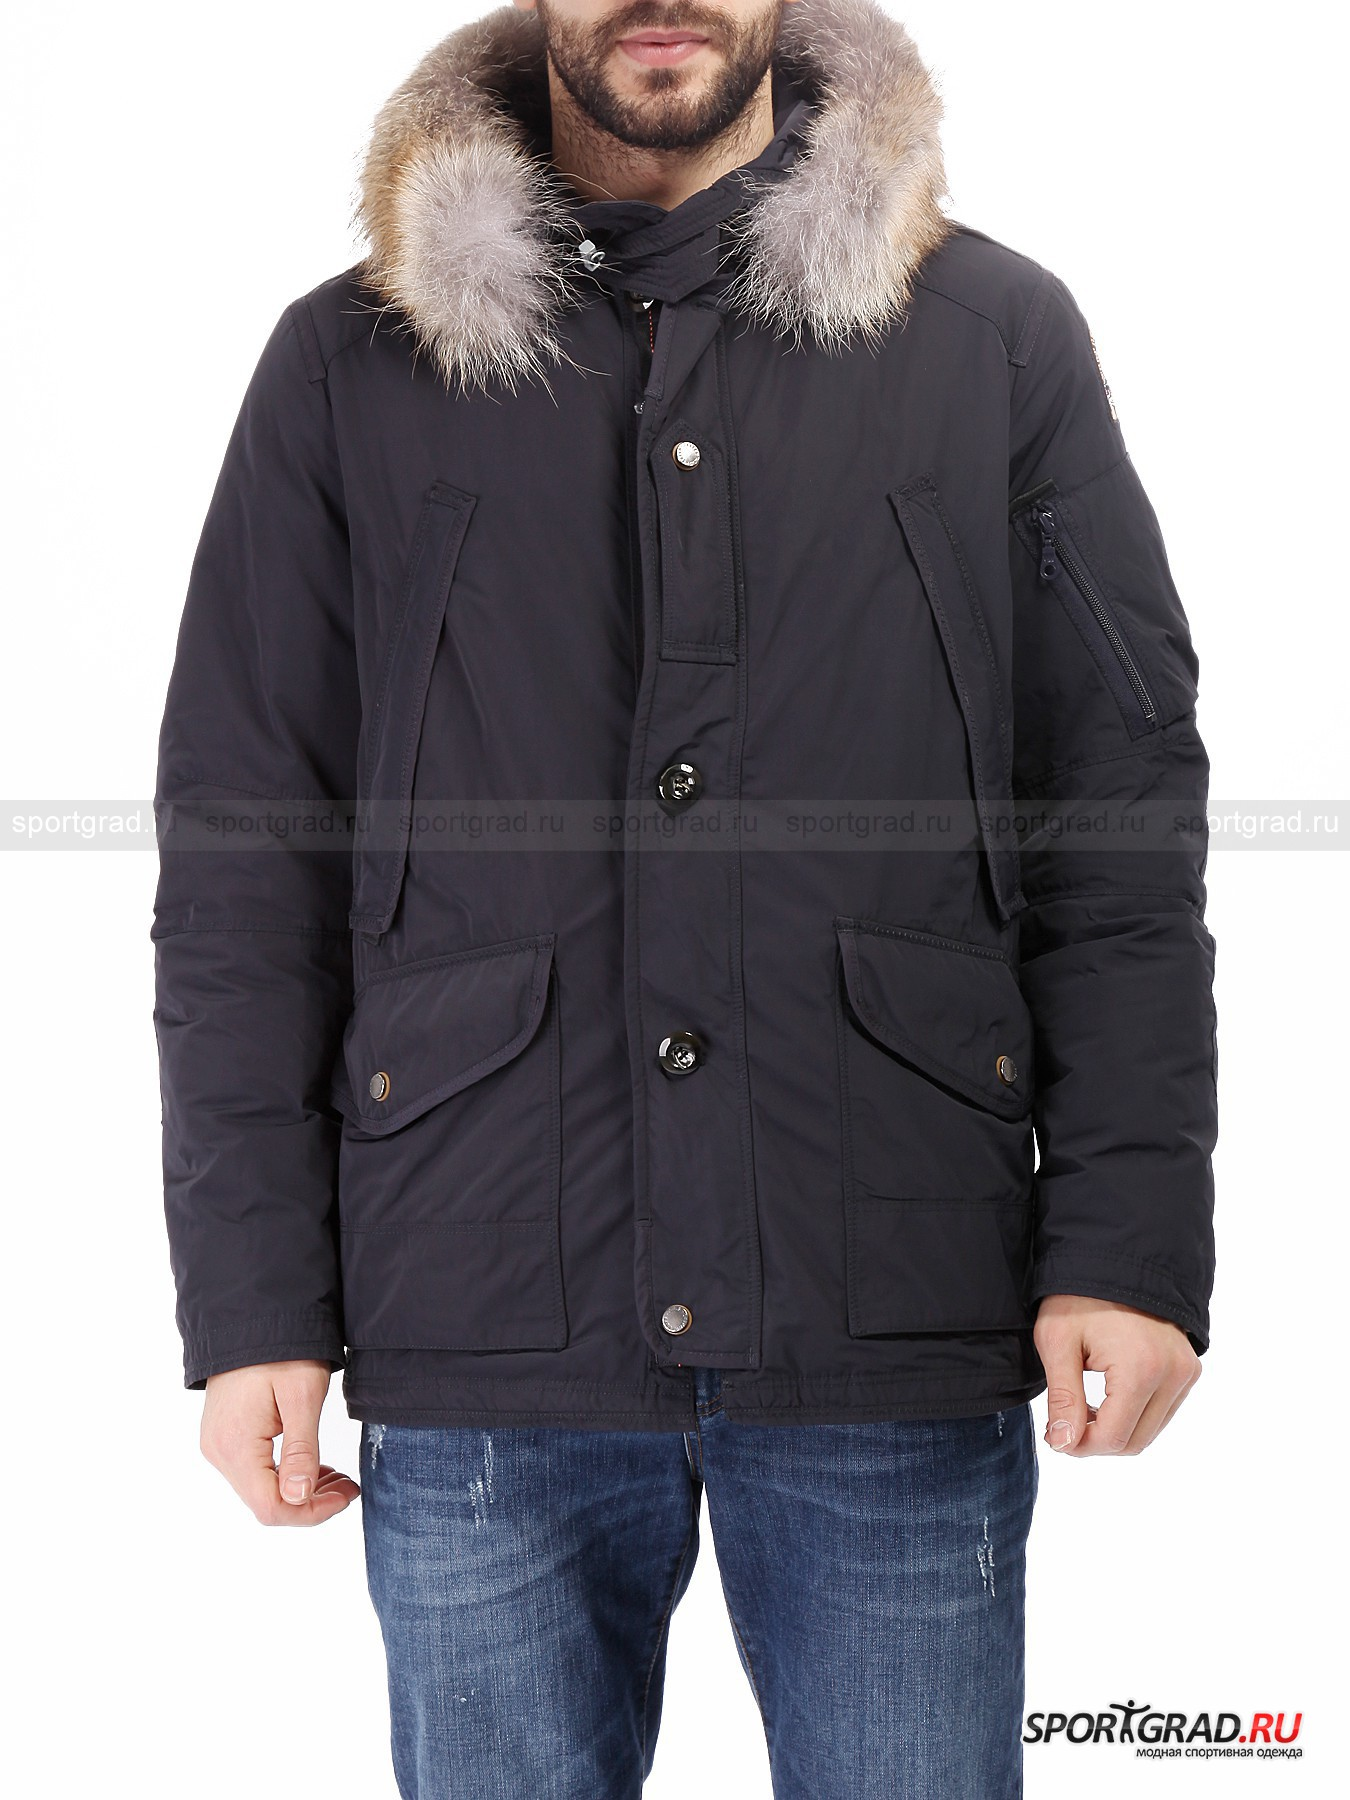 ������ ������� Arches PARAJUMPERS